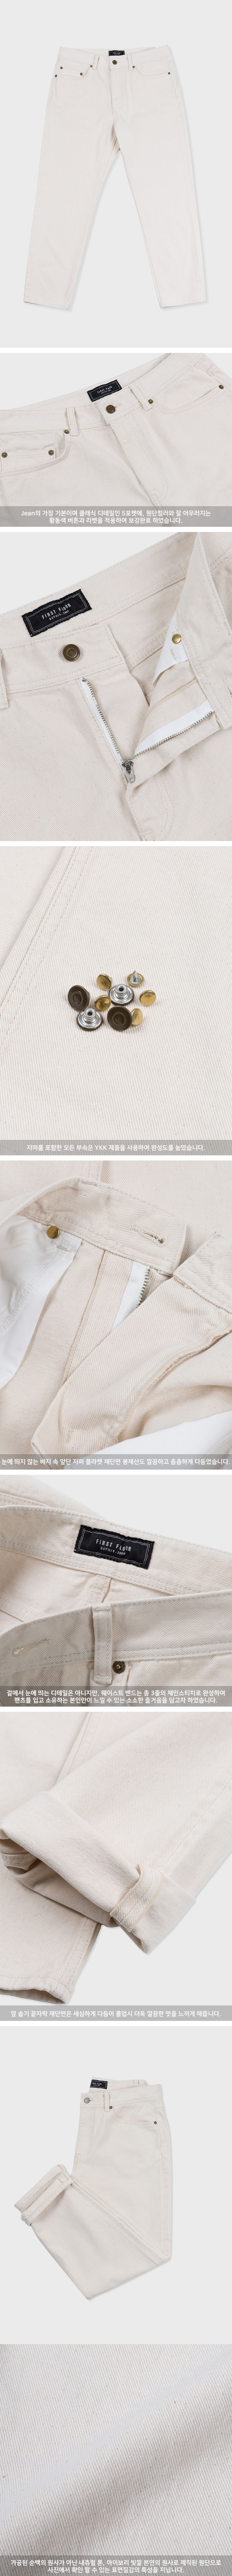 퍼스트플로어(FIRSTFLOOR) EASYGOING CROP PANTS (regular fit  natural color cream jeans)